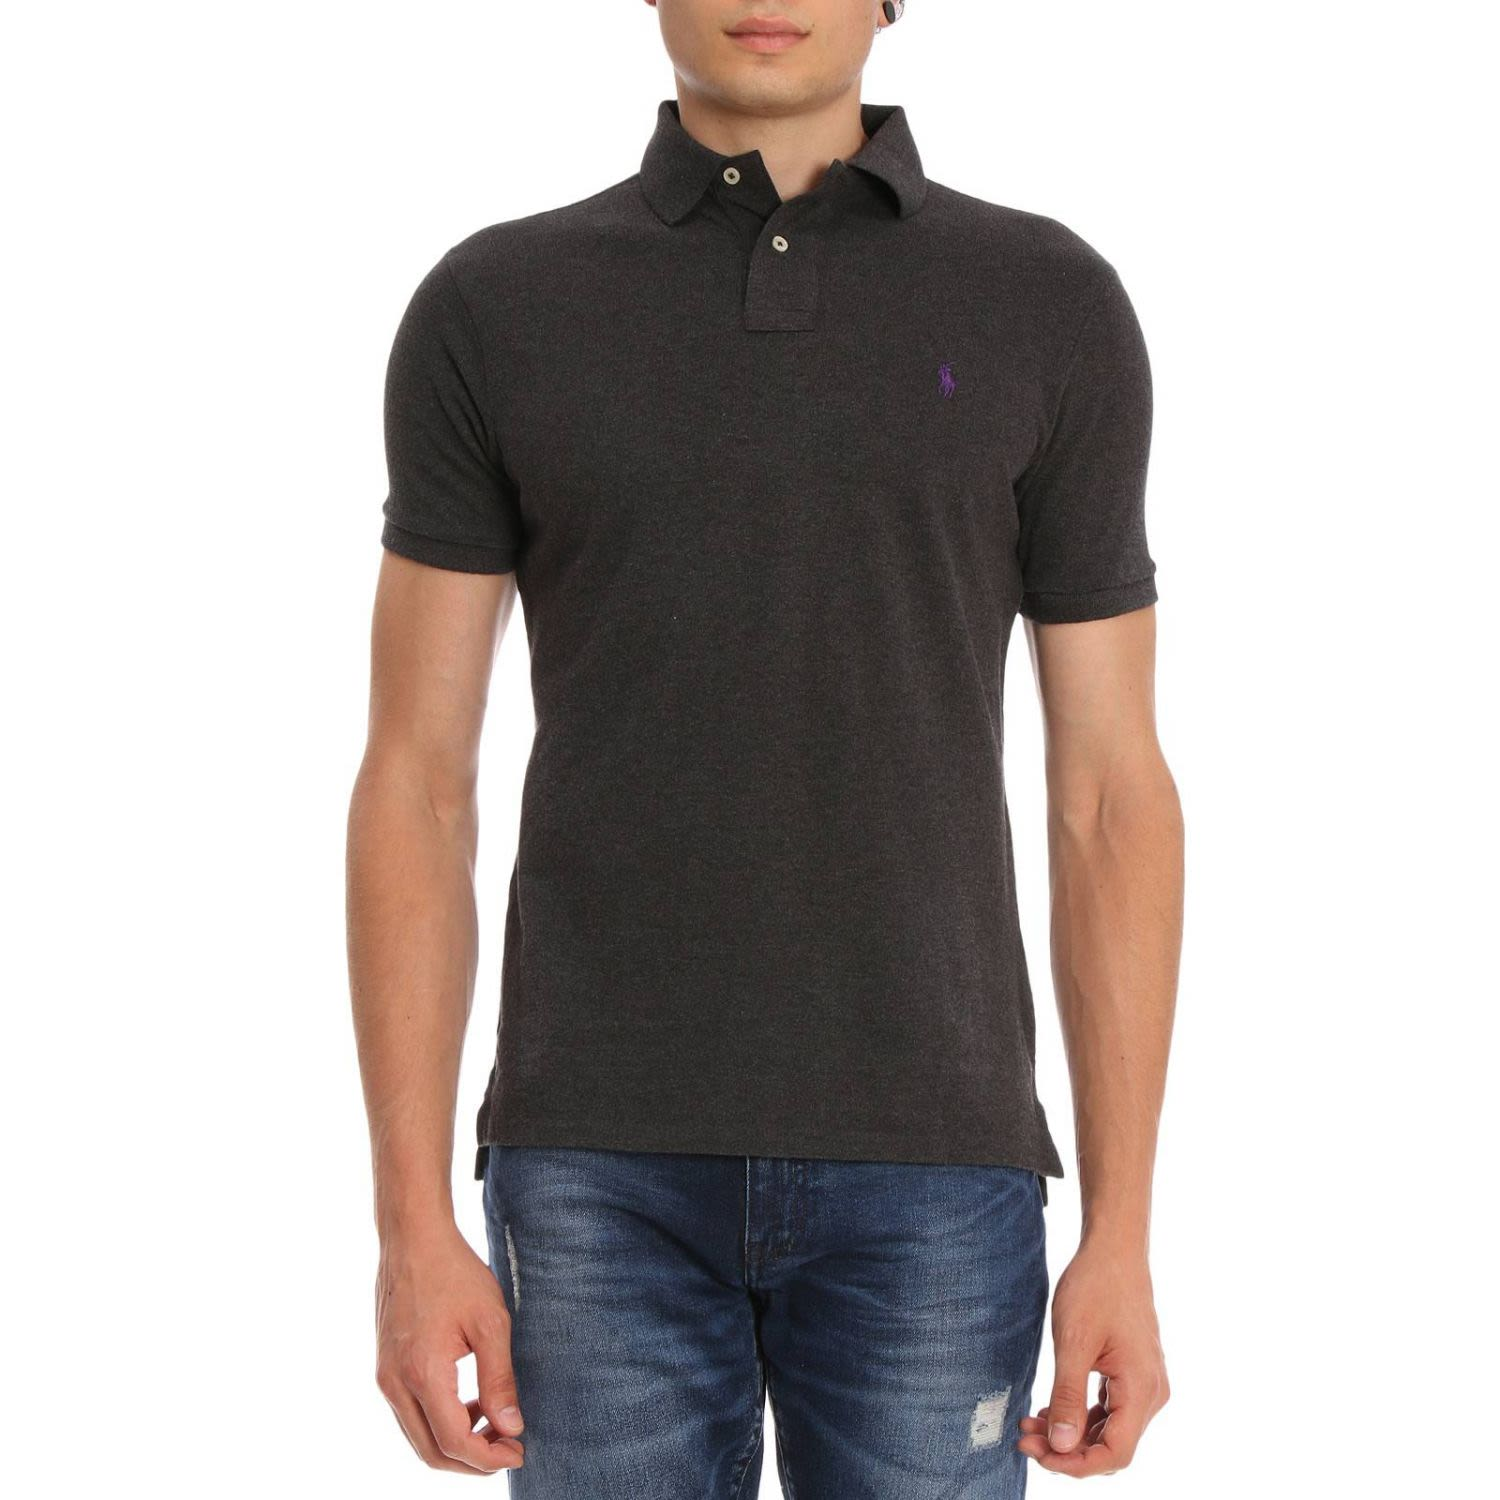 Polo Ralph Lauren T-shirt T-shirt Men Polo Ralph Lauren